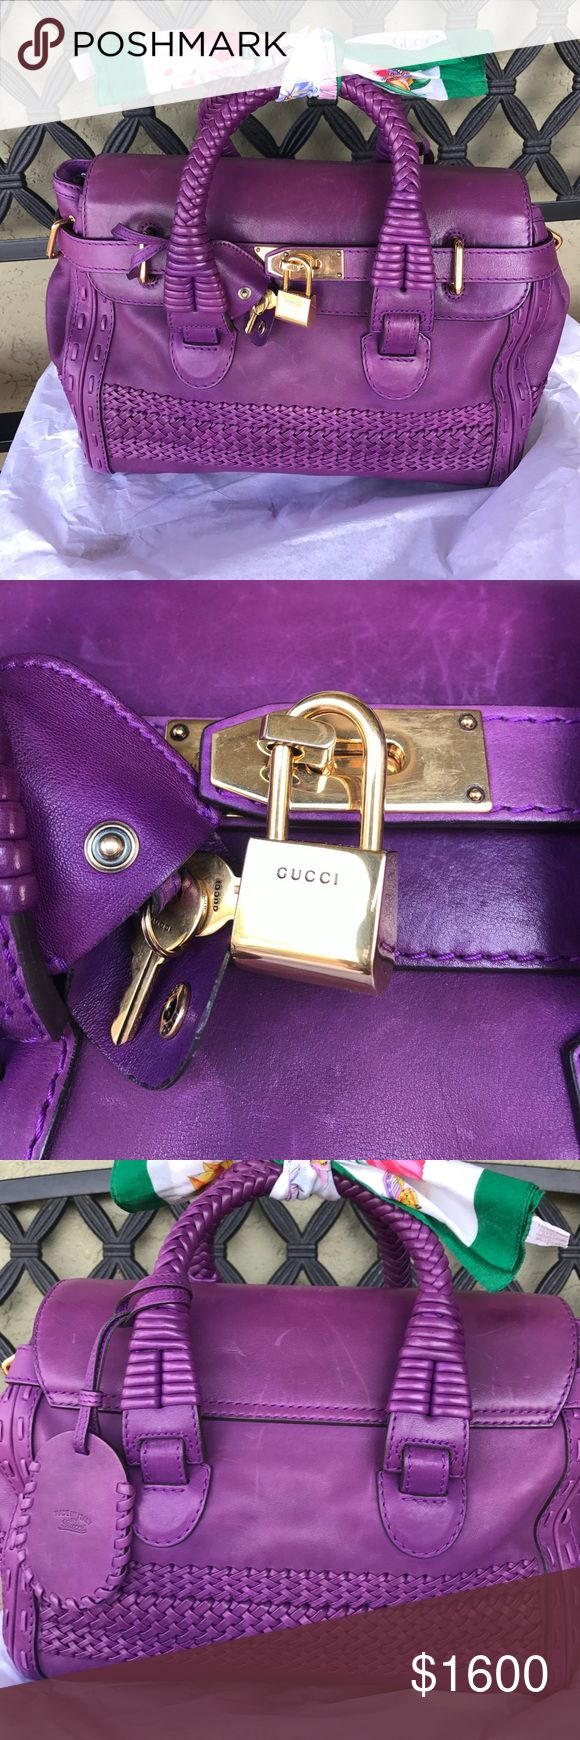 Authentic Limited Edition Gucci Satchel Tags from Gucci still attached. Never been used or carried. The leather is distressed since it's a handcrafted dyed leather  scuffs from display; woven handles and braided detail throughout; flap and belted strap closure in front with hardware to secure and lock. Brass metal detailing  Removable luggage tag on bag with one minor spot (see pictures). Canvas lined; one zipper pouch; 2 additional pouches for phone and accessories. Three bamboo feet on…